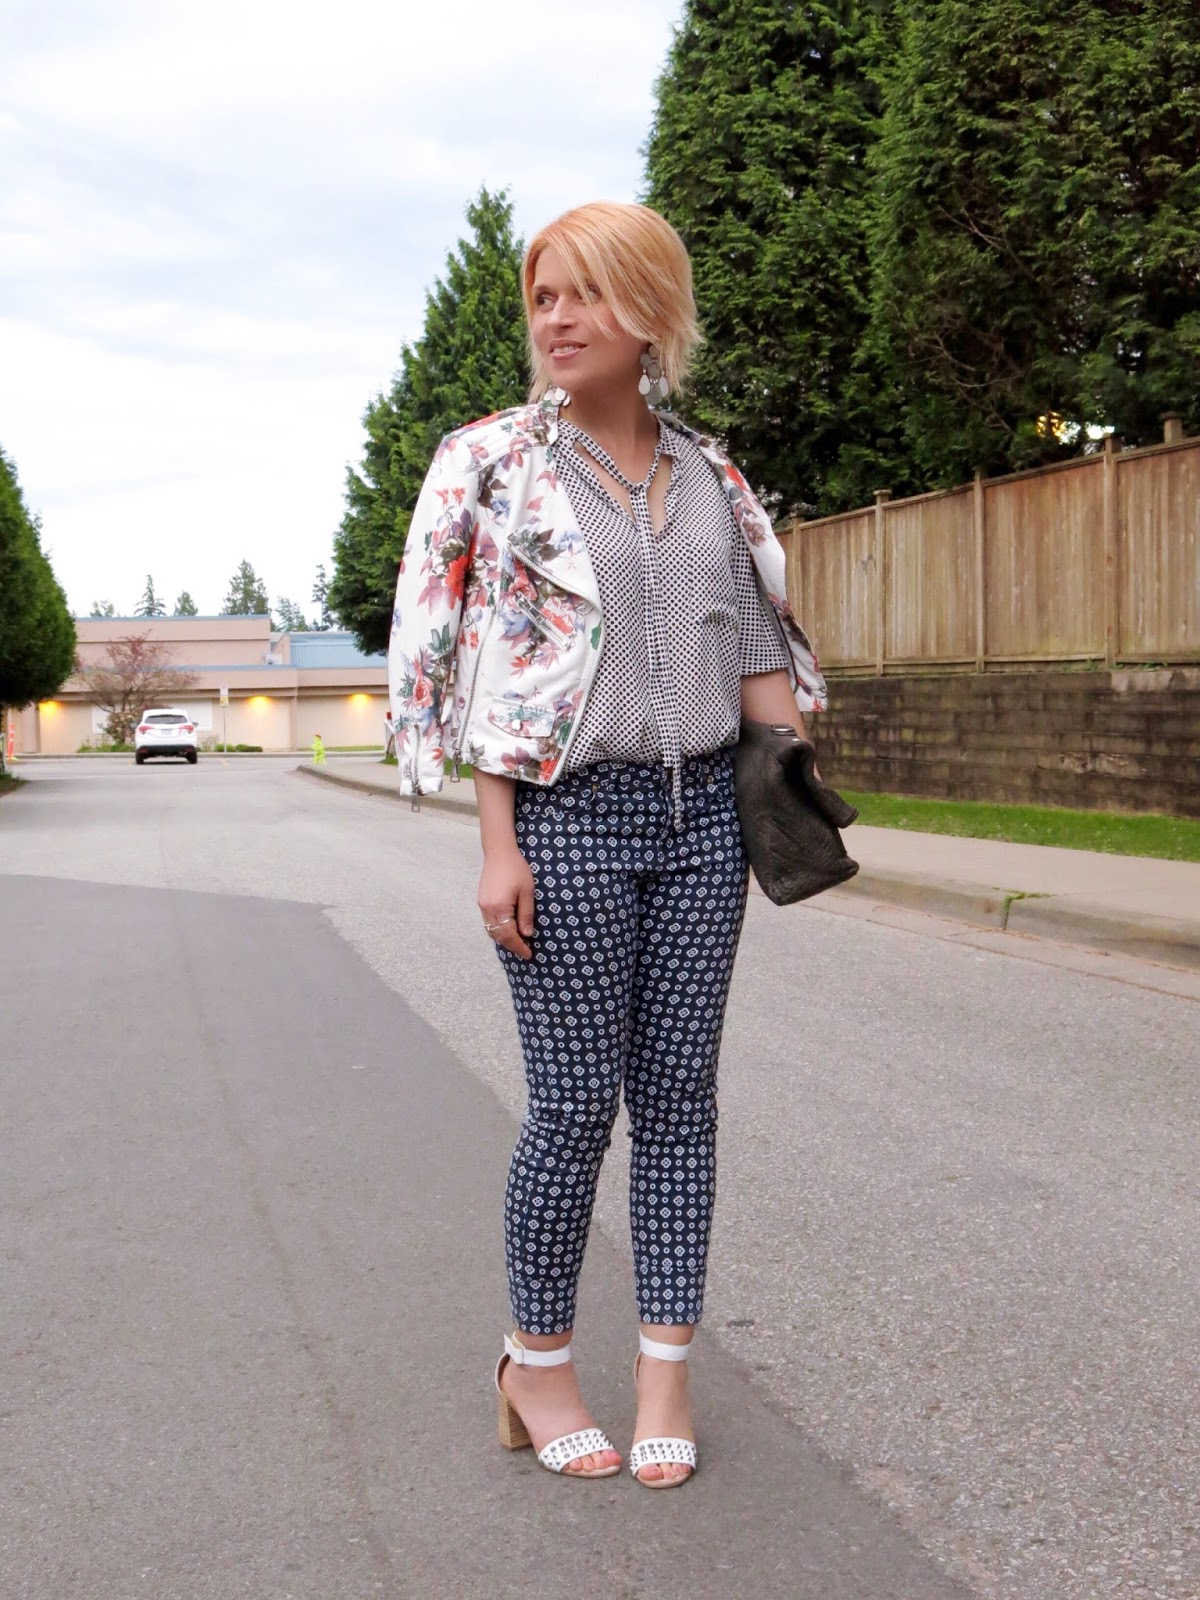 styling patterned jeans and a dotted blouse with a floral moto jacket and white ankle-strap sandals